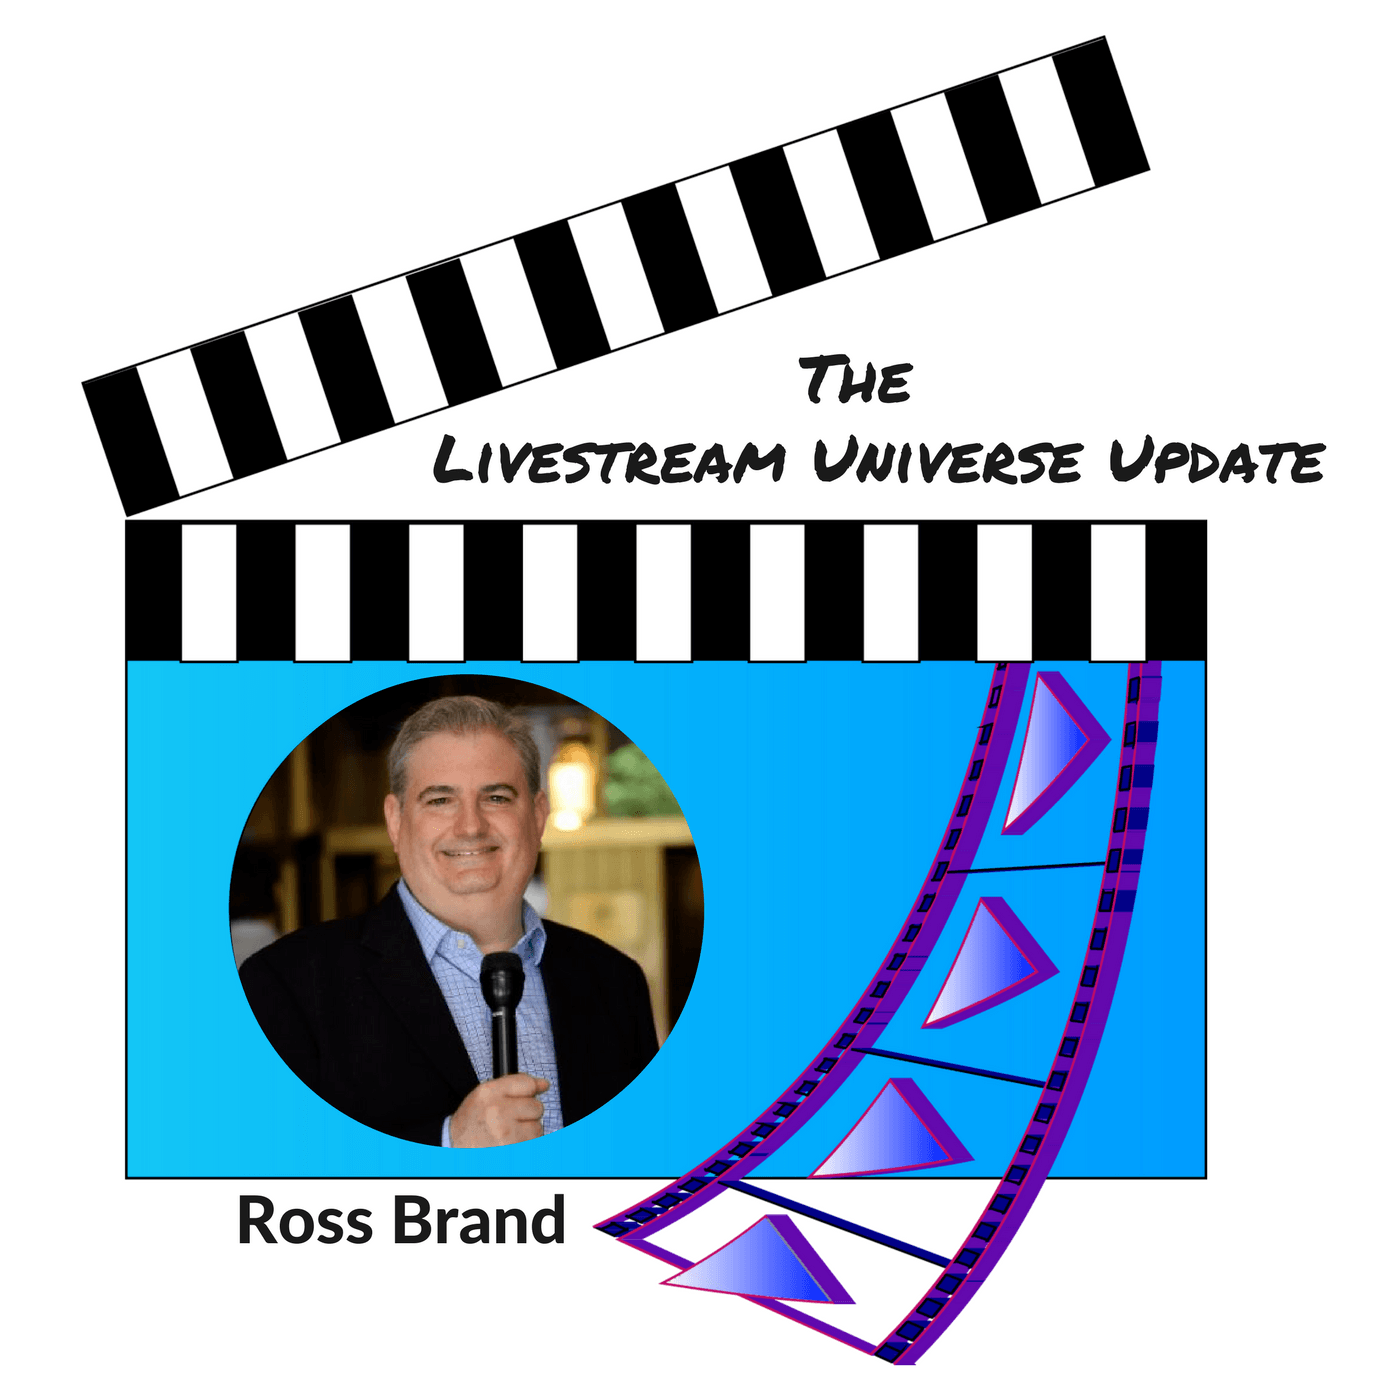 Livestream Universe Update Ross Brand